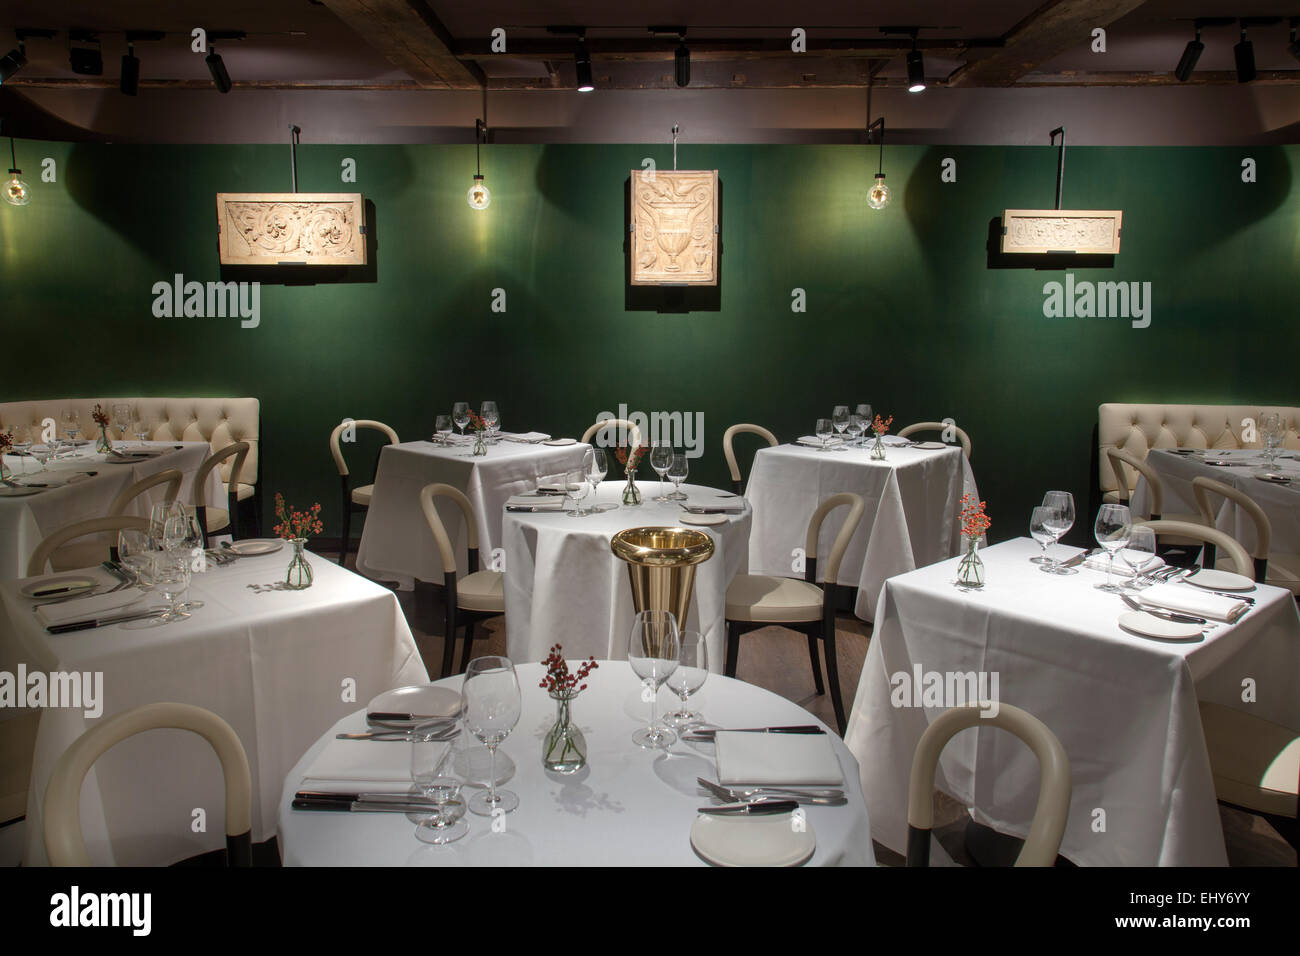 Members Dining Room - Moncler-Factory-Outlets.com